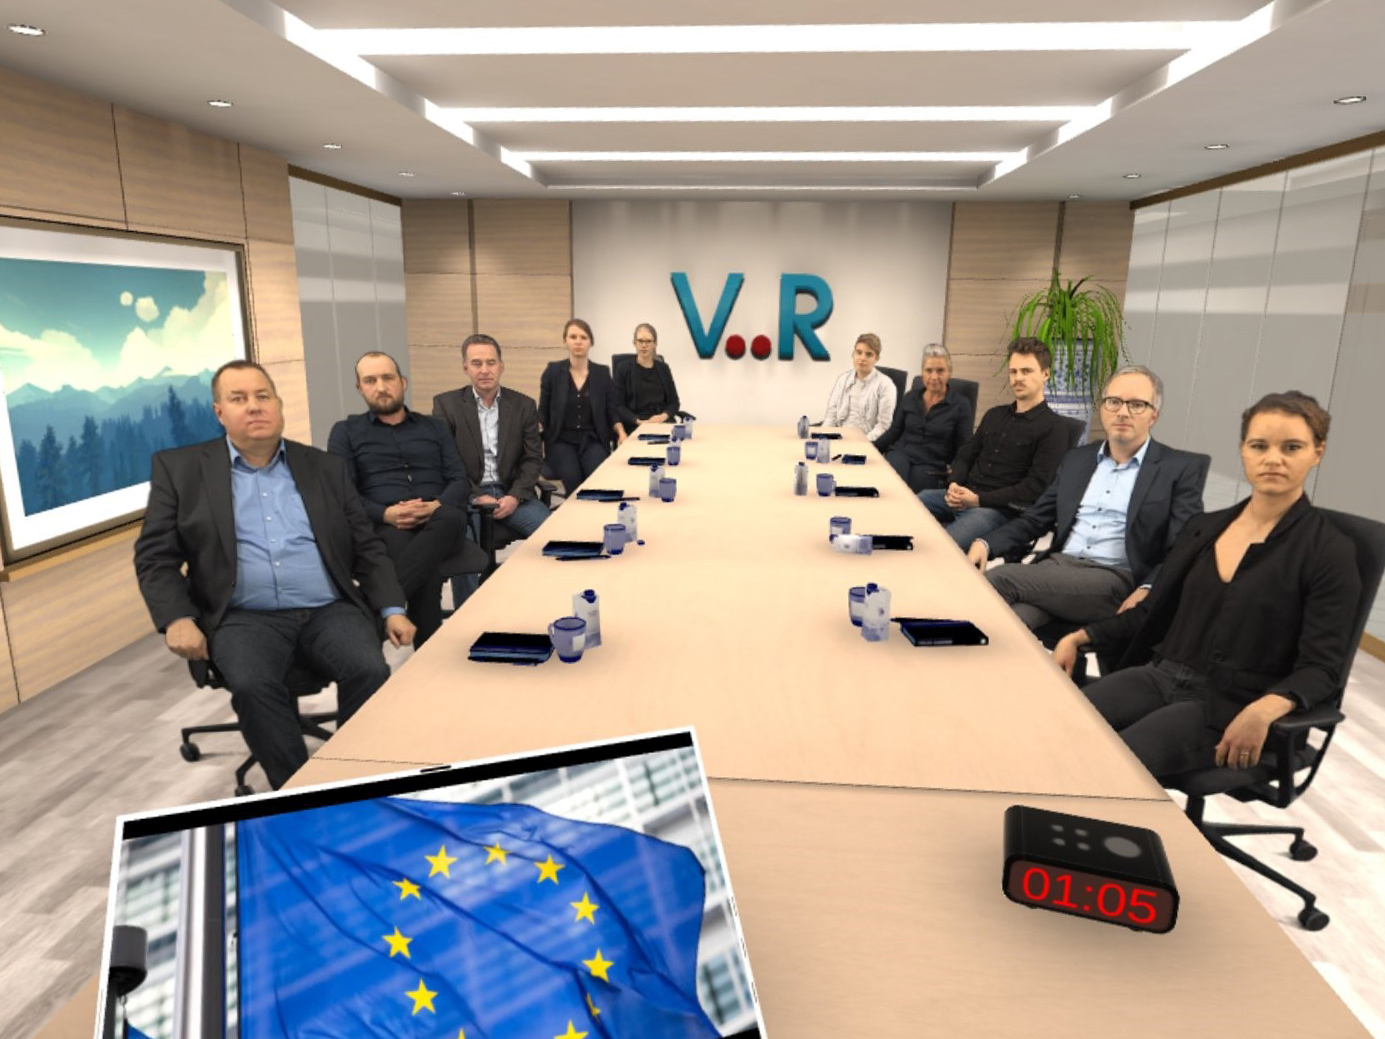 Ein Blick in den Virtual-Reality-Meeting-Raum.